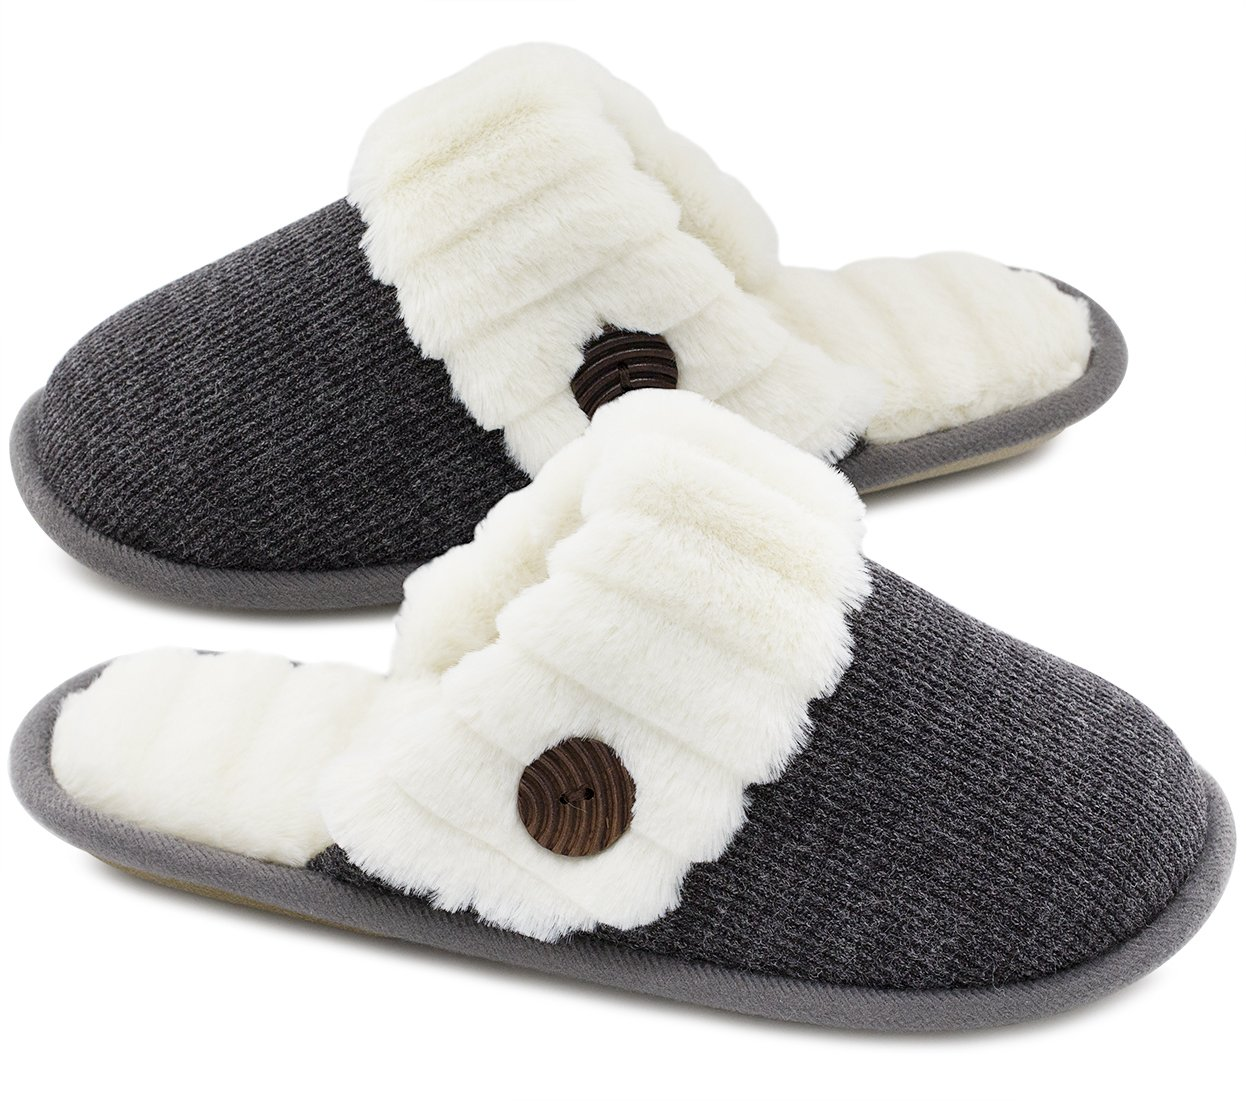 HomeTop Women's Cute Fuzzy Knitted Memory Foam Indoor House Slippers for Families Couples (39-40 (US Women's 9-10; Men's 7-8), Dark Gray)